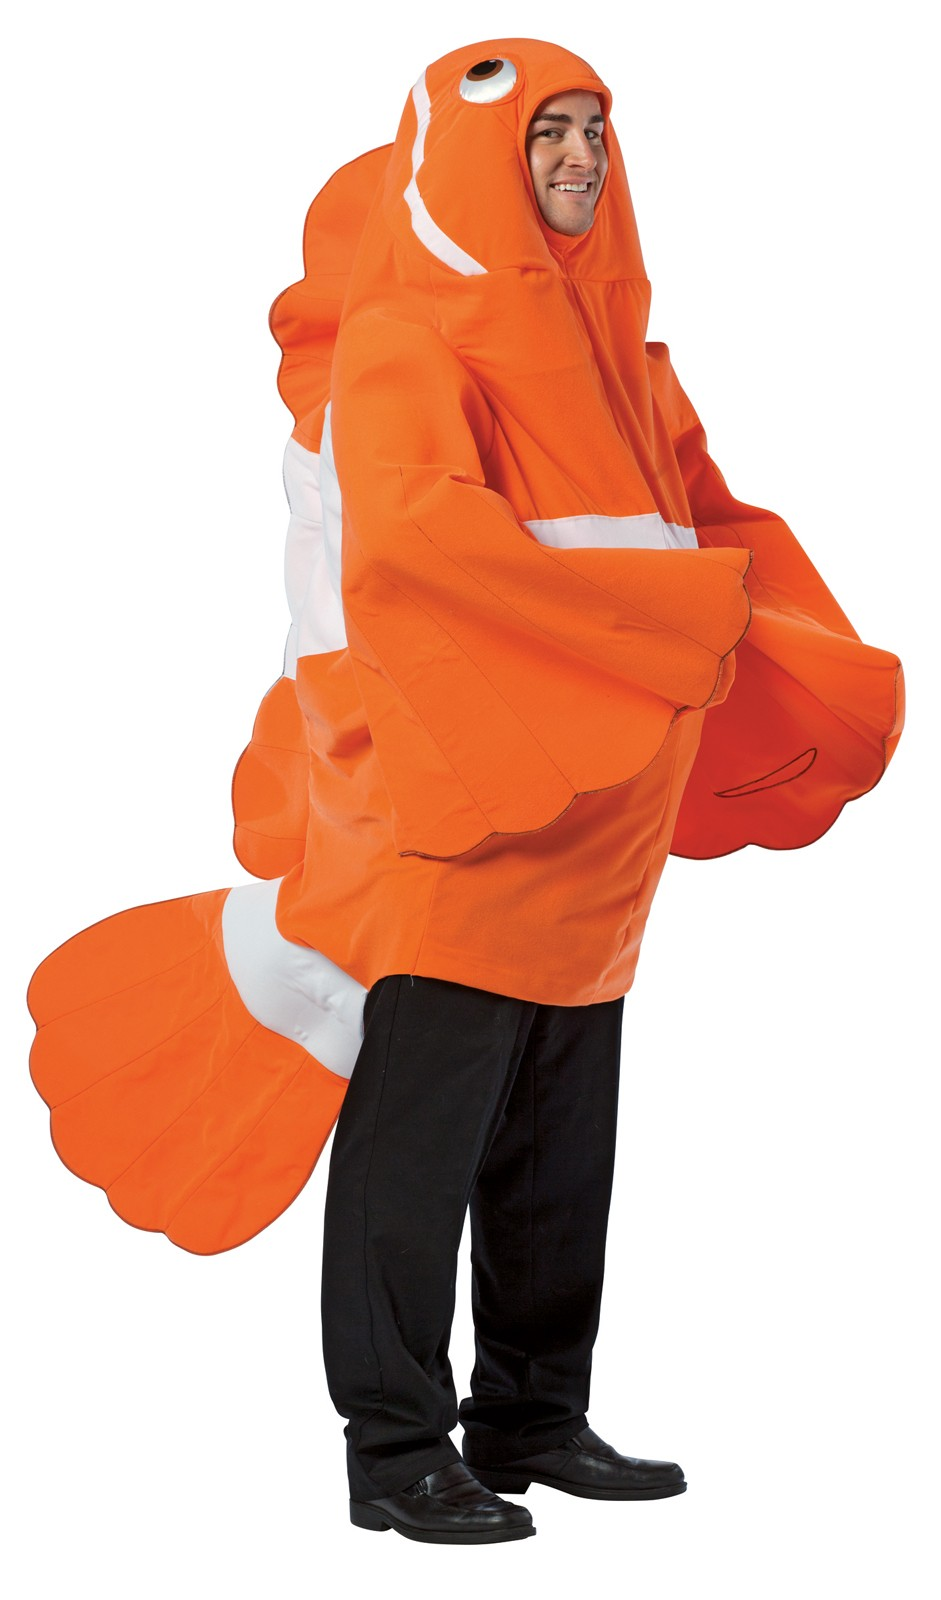 Clown Fish Funny Adult Fancy Dress Costume | Costumes.com.au